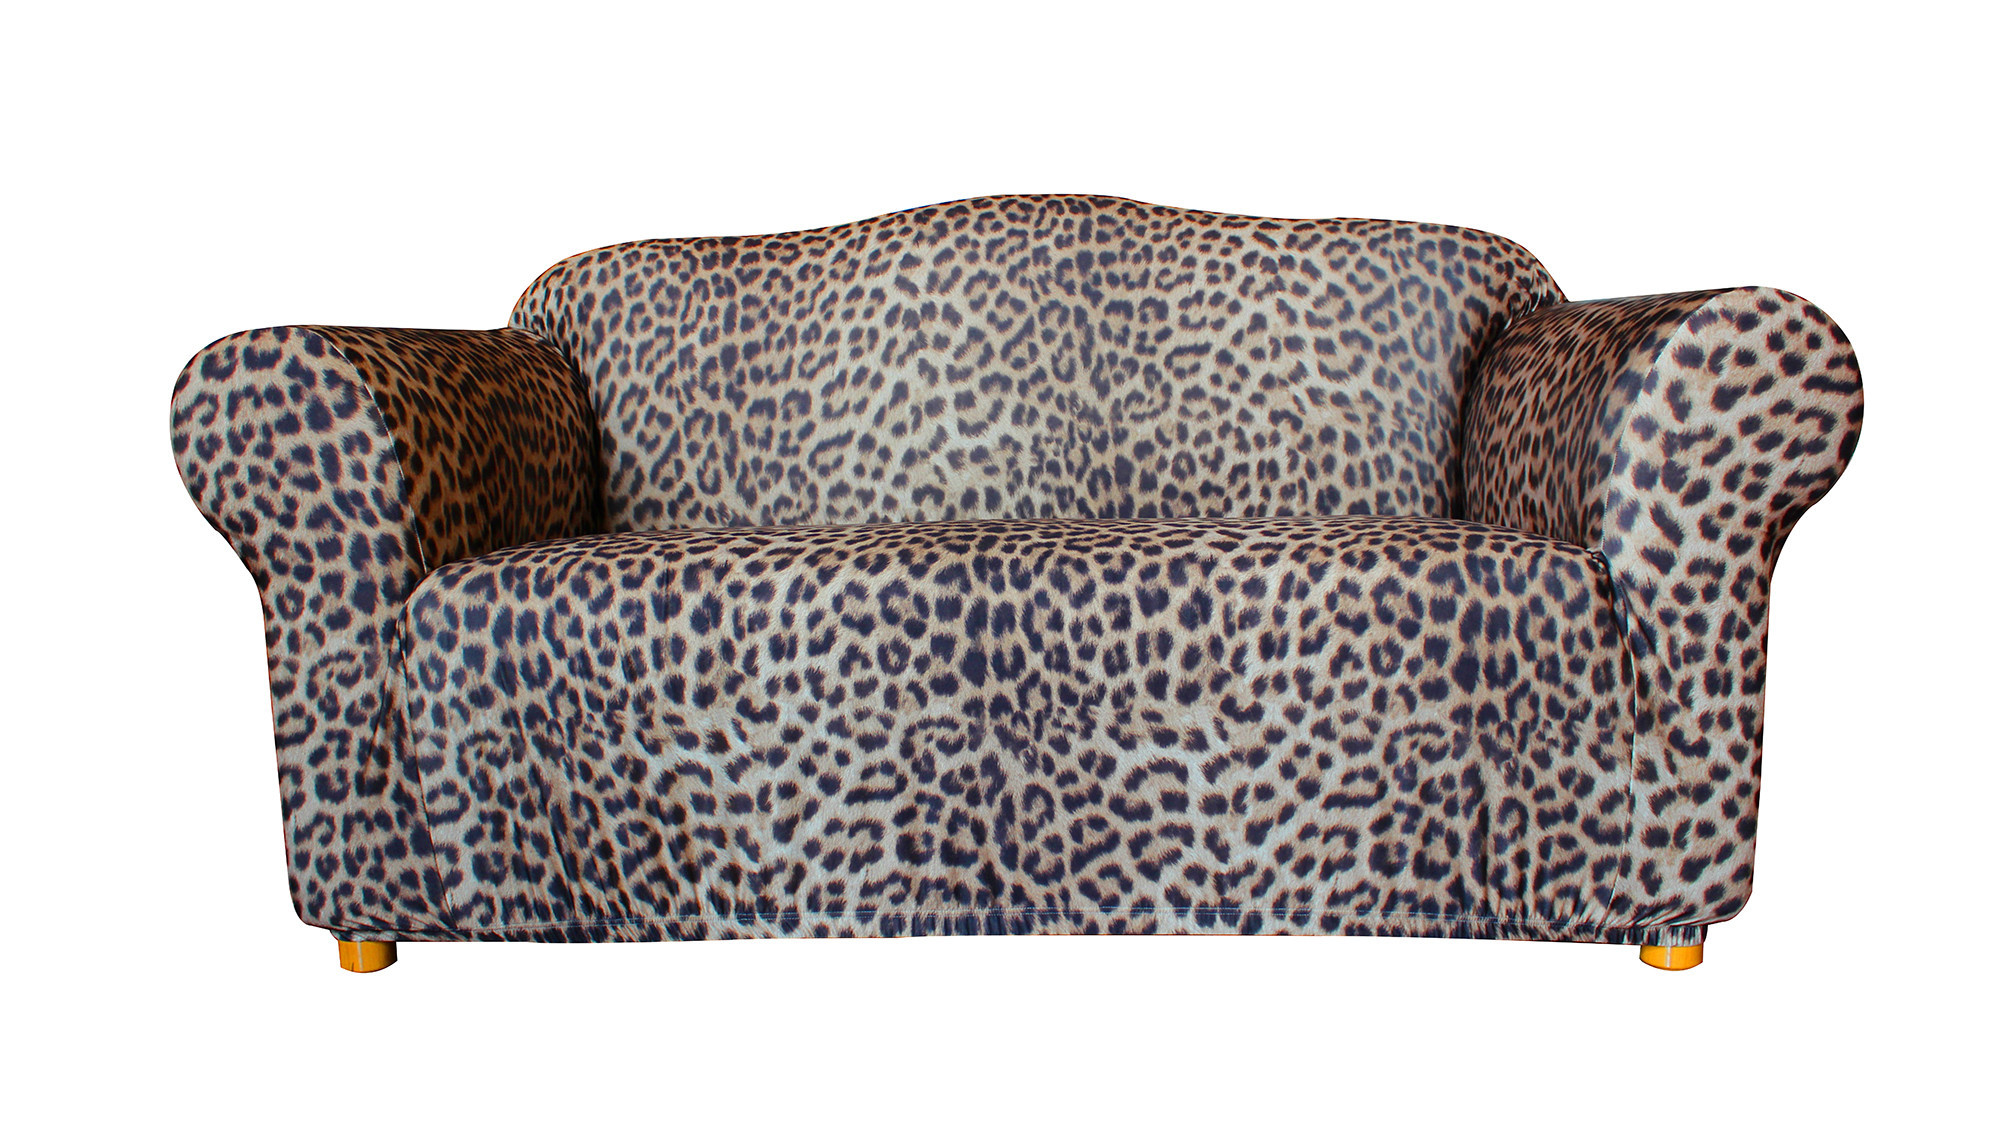 leopard print sofa appears corner bed orange new statement prints 2 seater cover